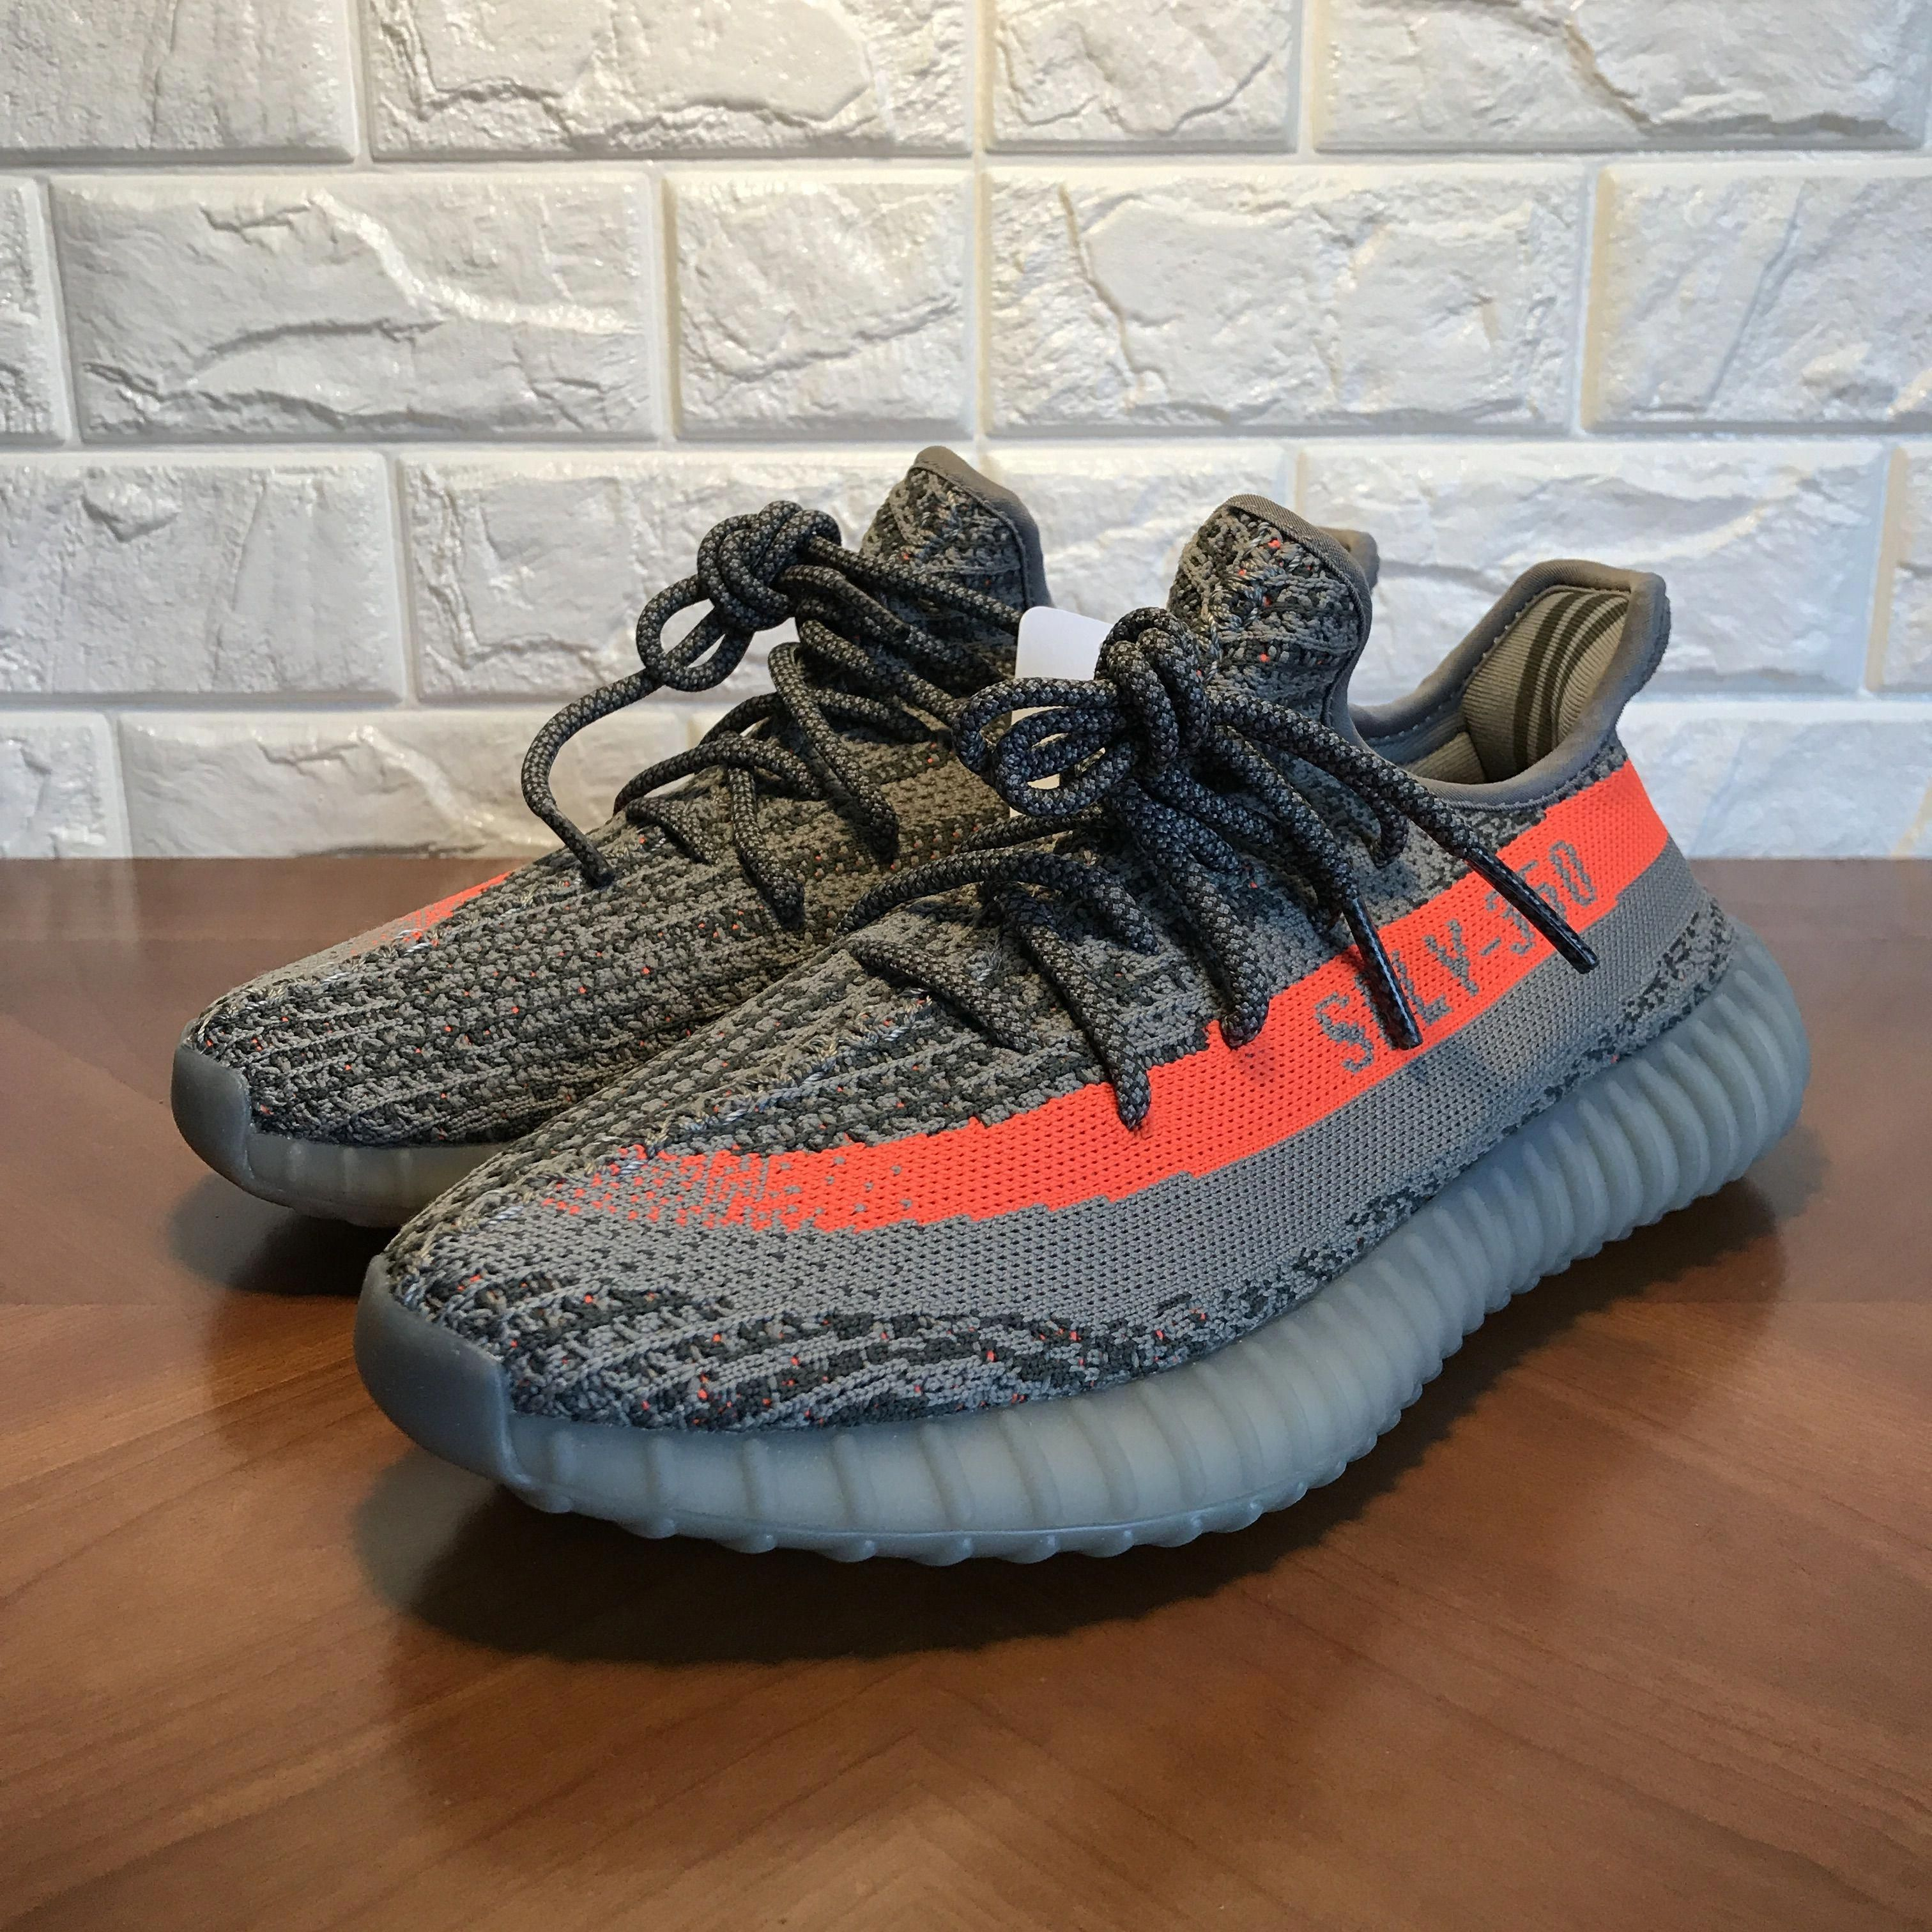 yeezy shoes near me